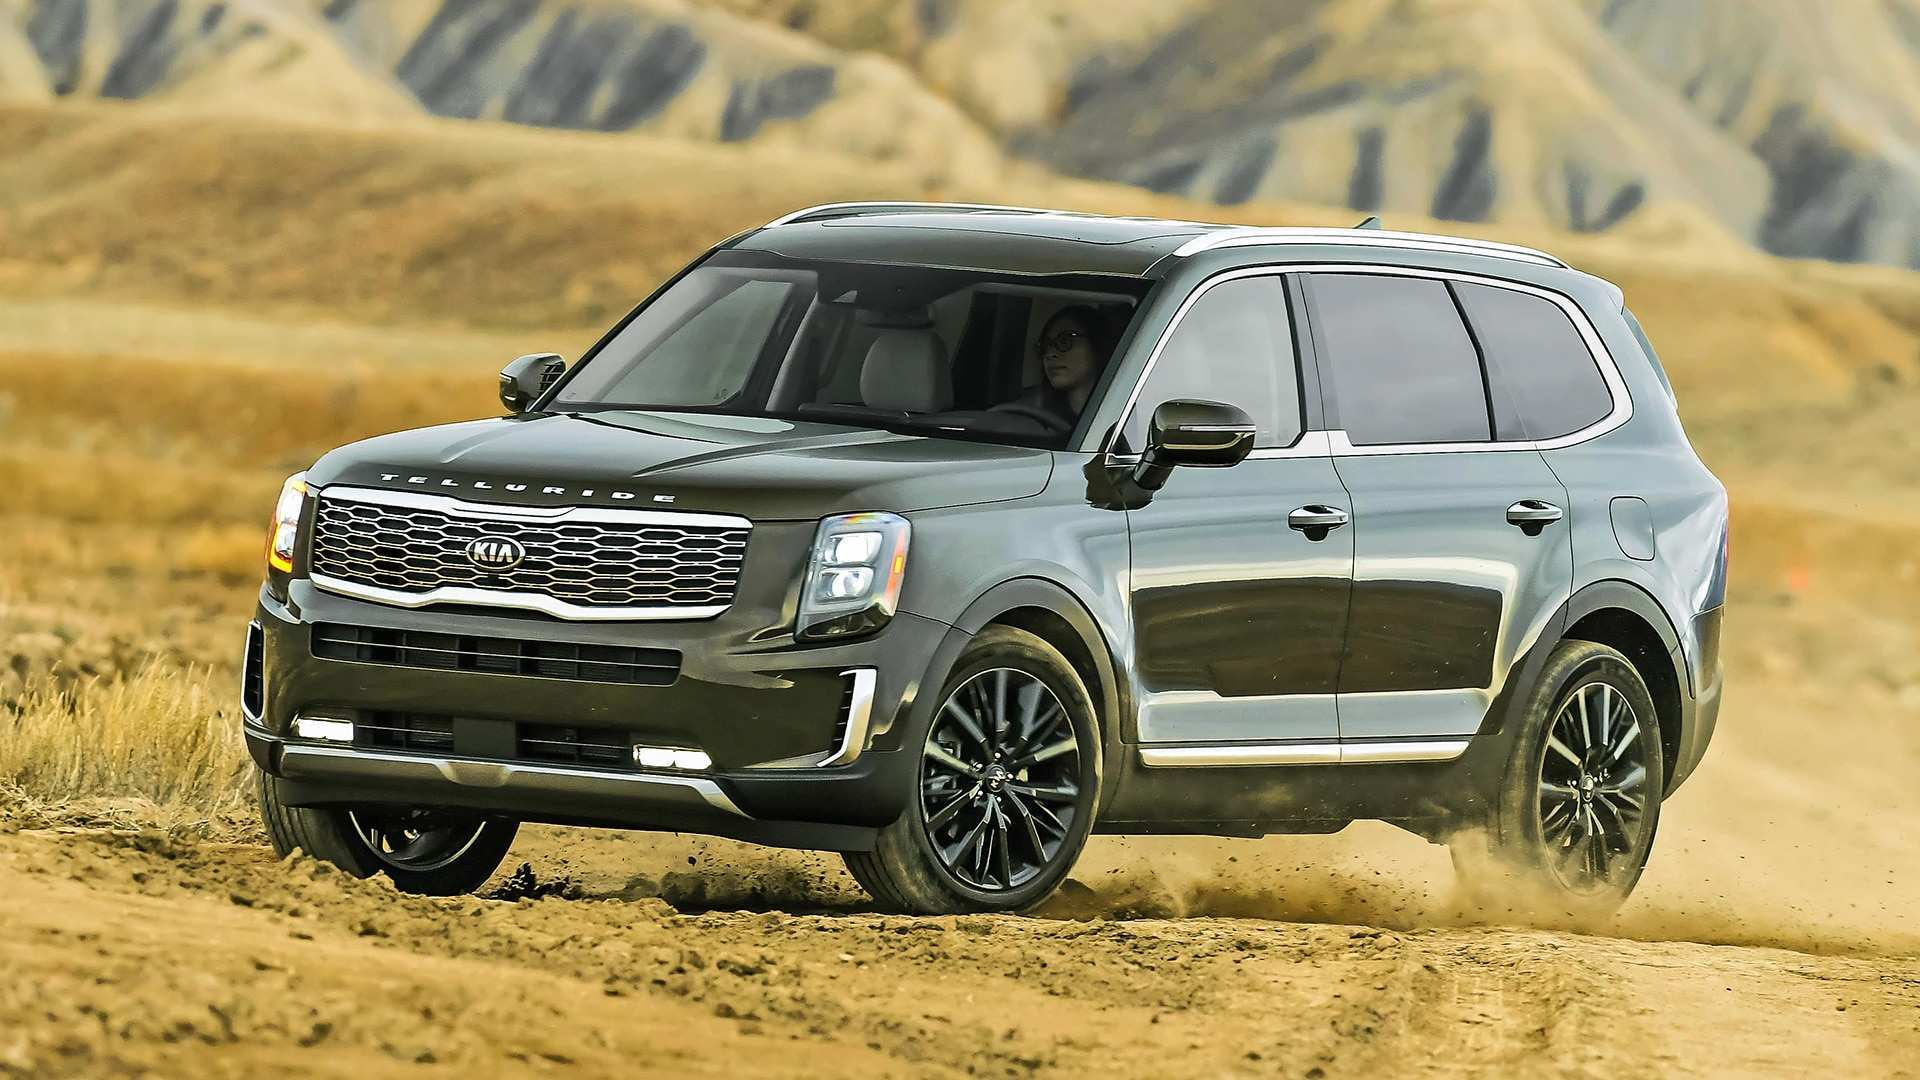 97 All New 2020 Kia Telluride Images Overview